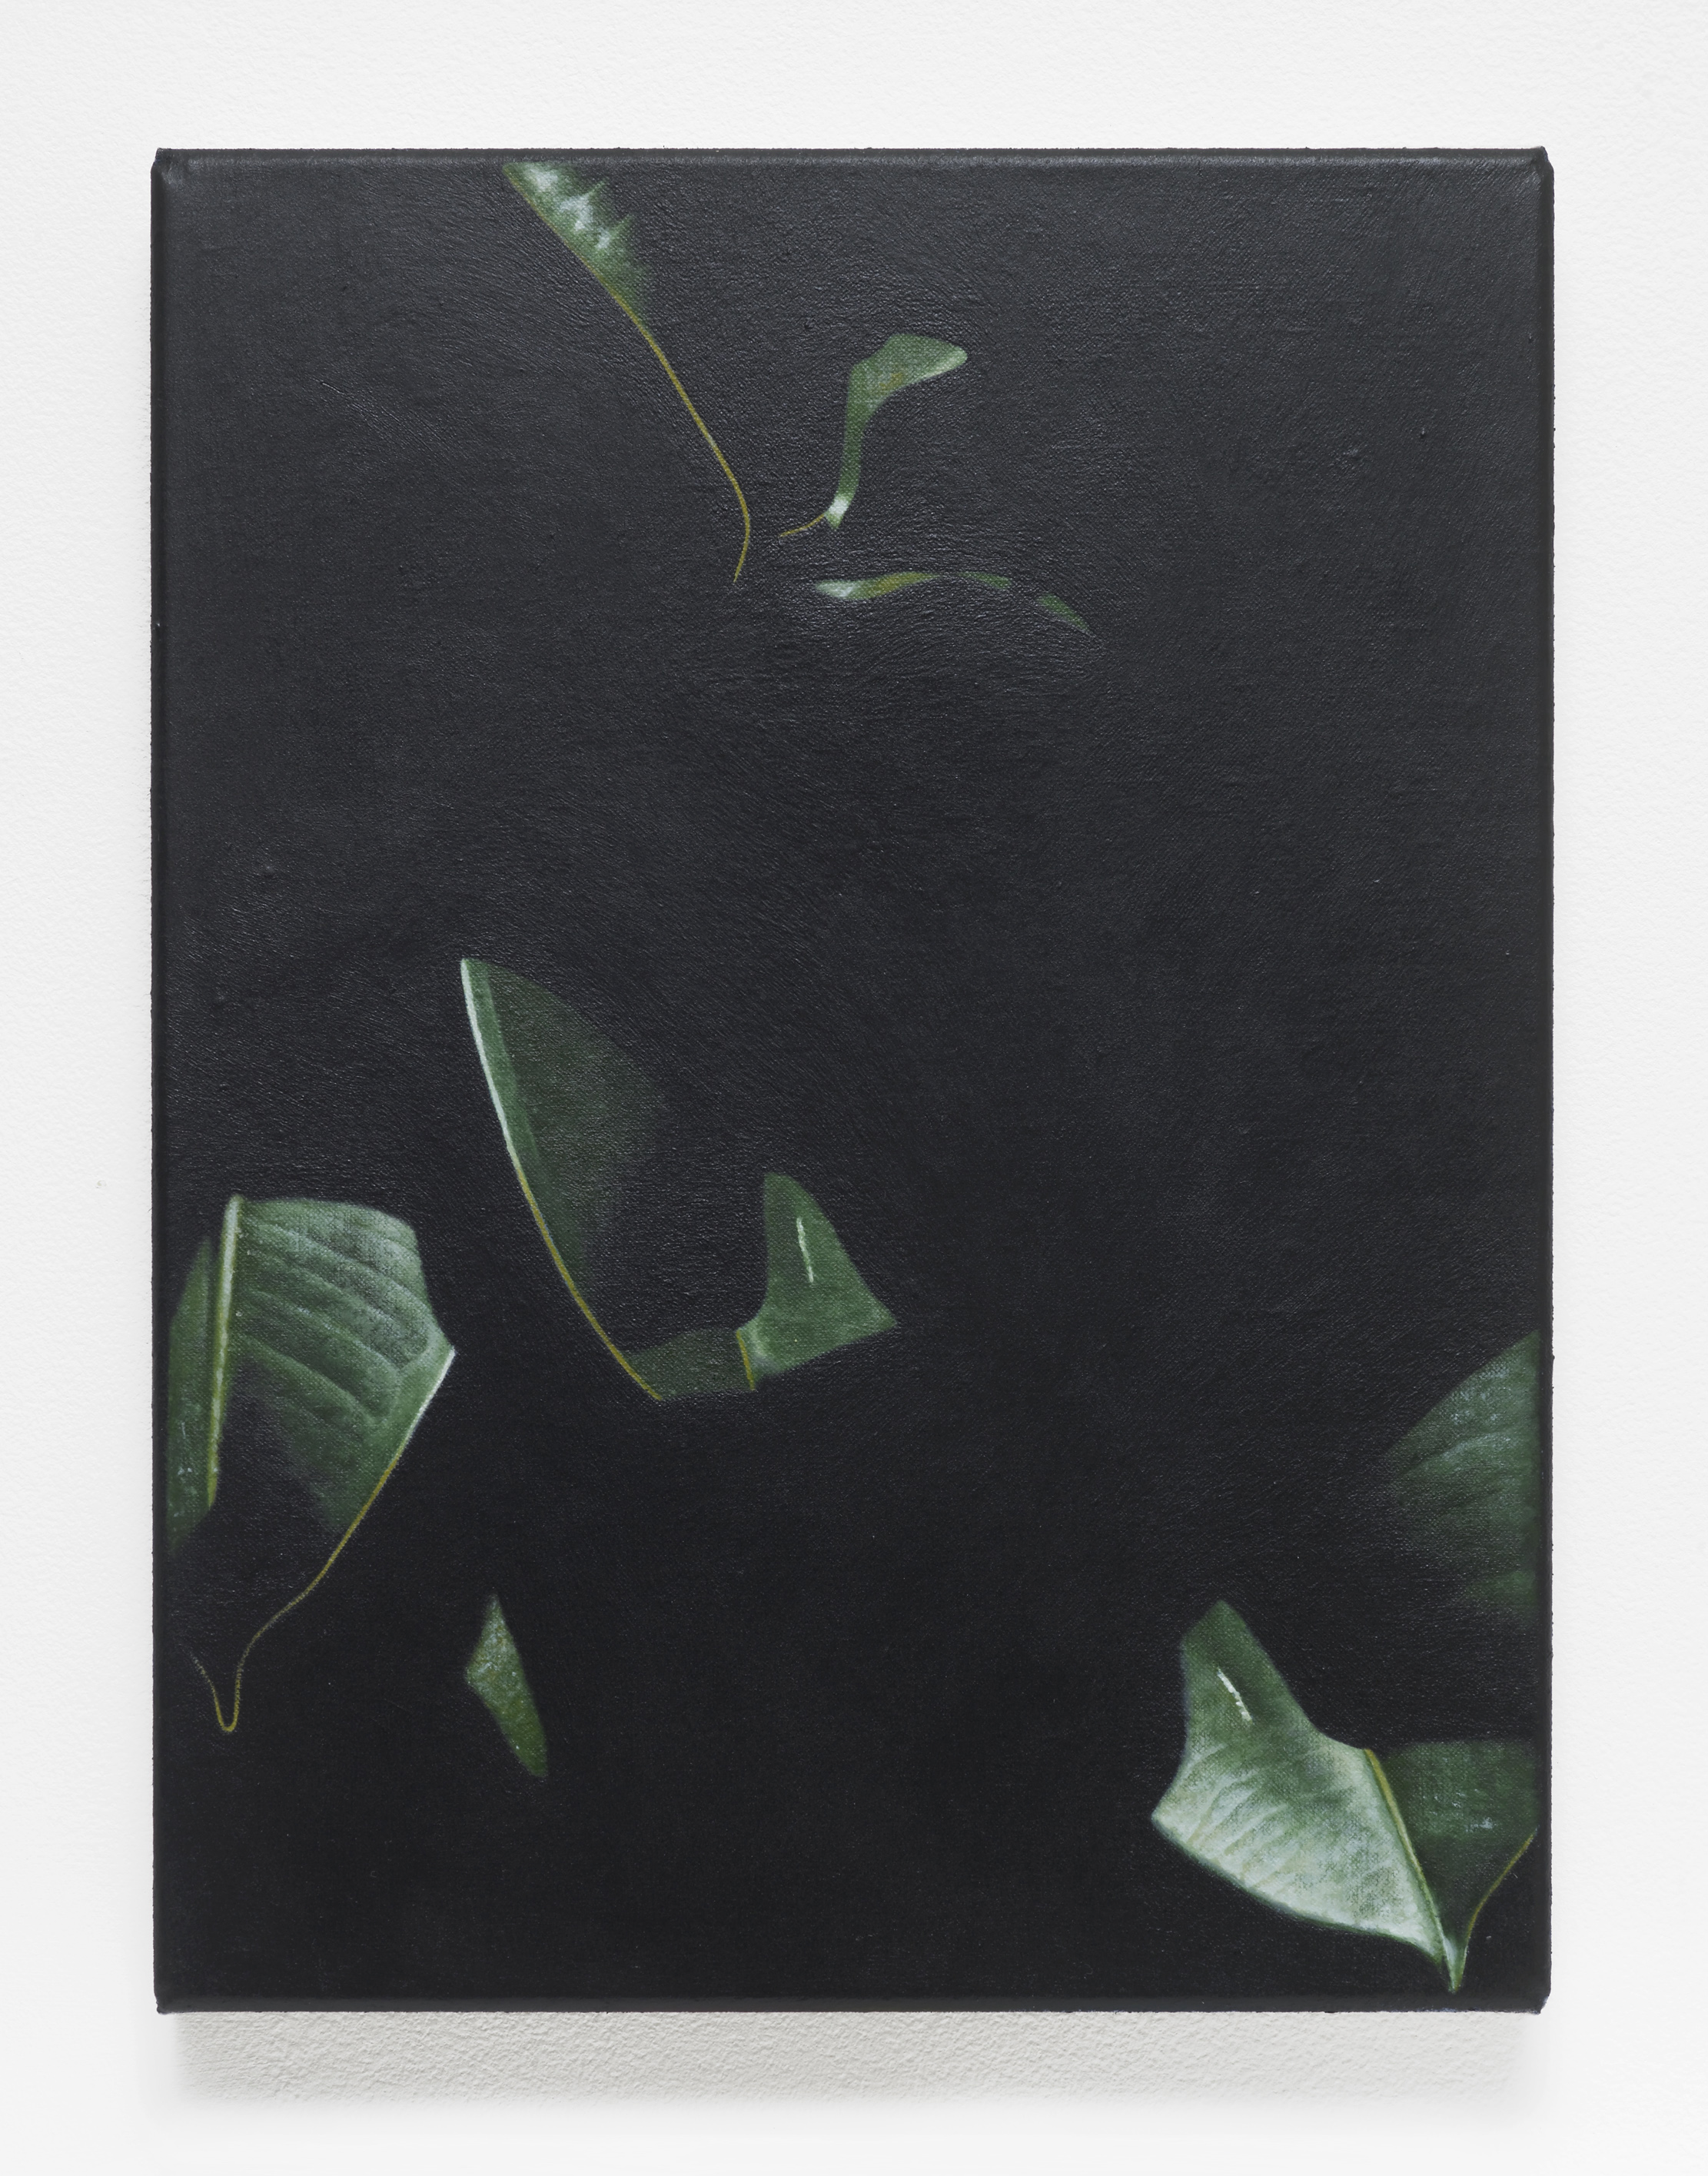 Rubber Plant, 2016, Oil on linen, 32 x 24 cm, 12 5/8 x 9 1/2 ins. False Friends Falsche Freunde , Oliver Osborne